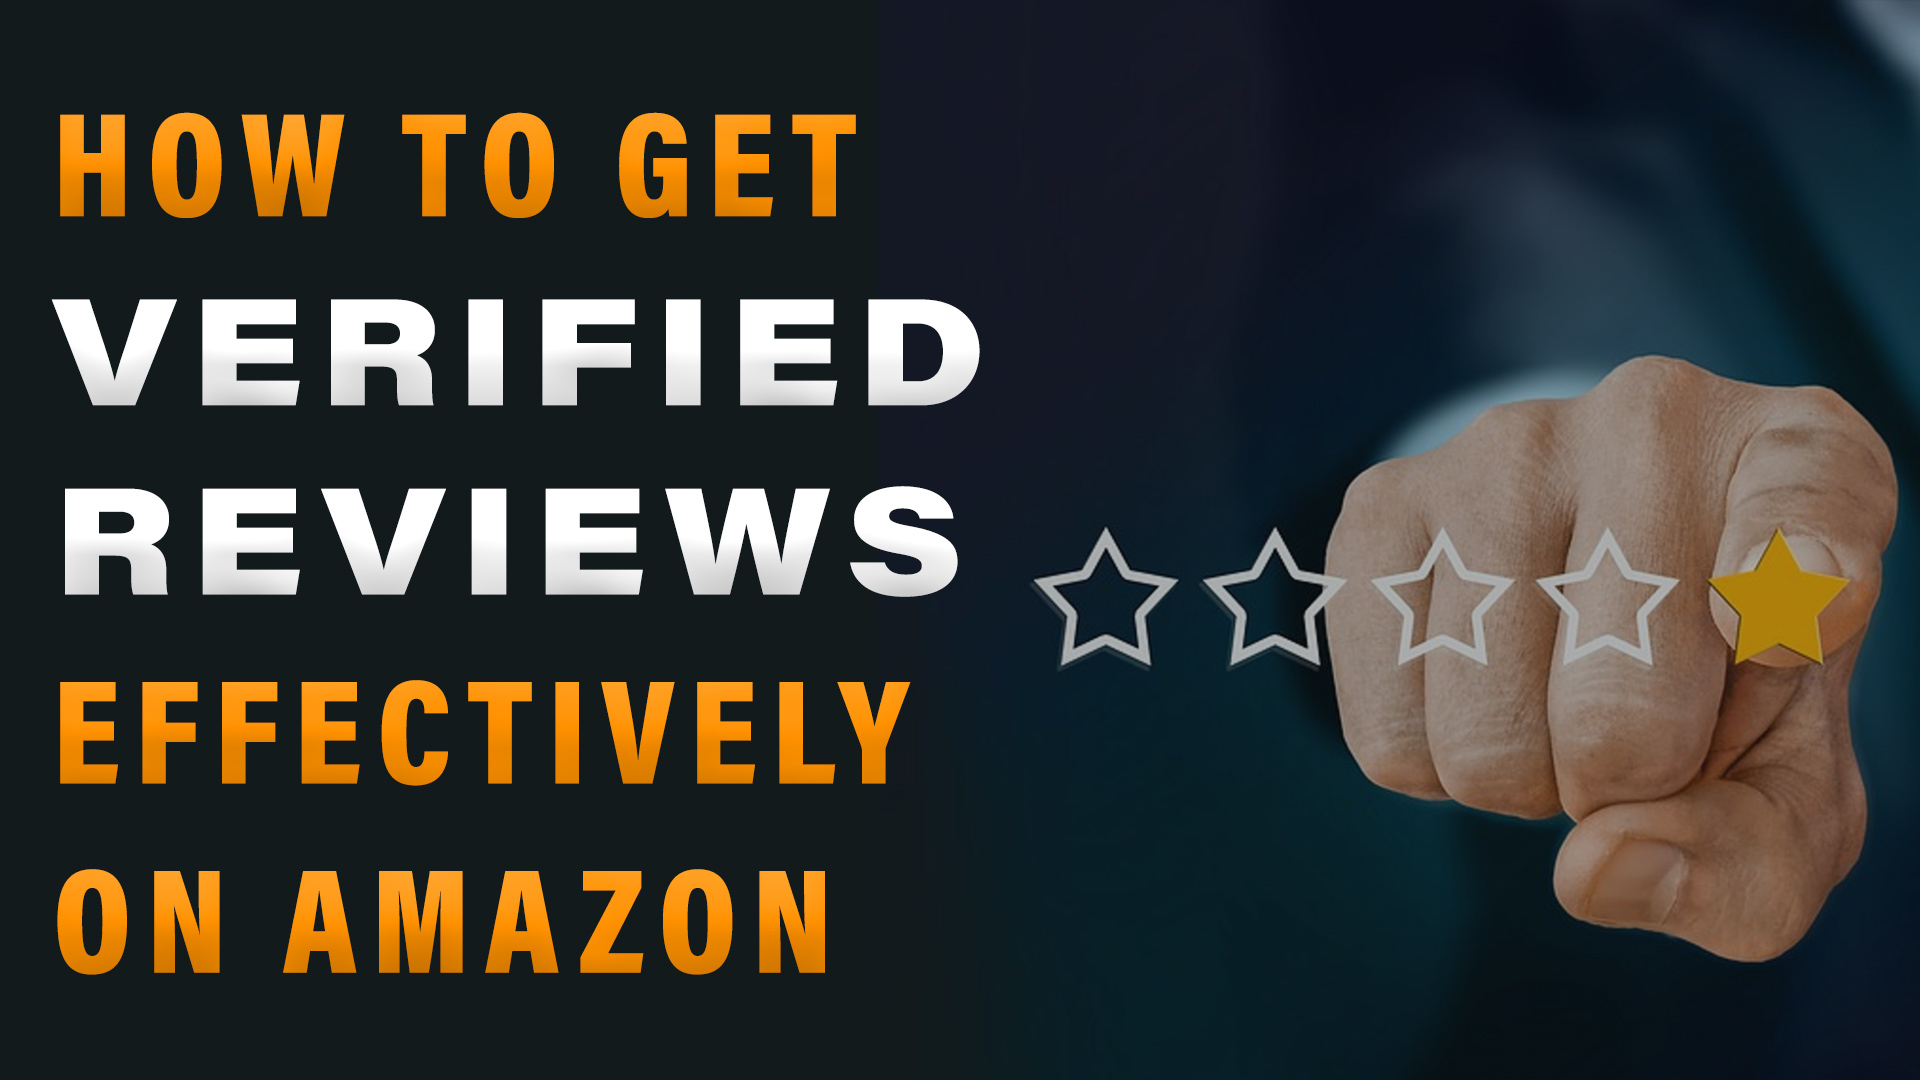 How to Get Verified Reviews Effectively on Amazon